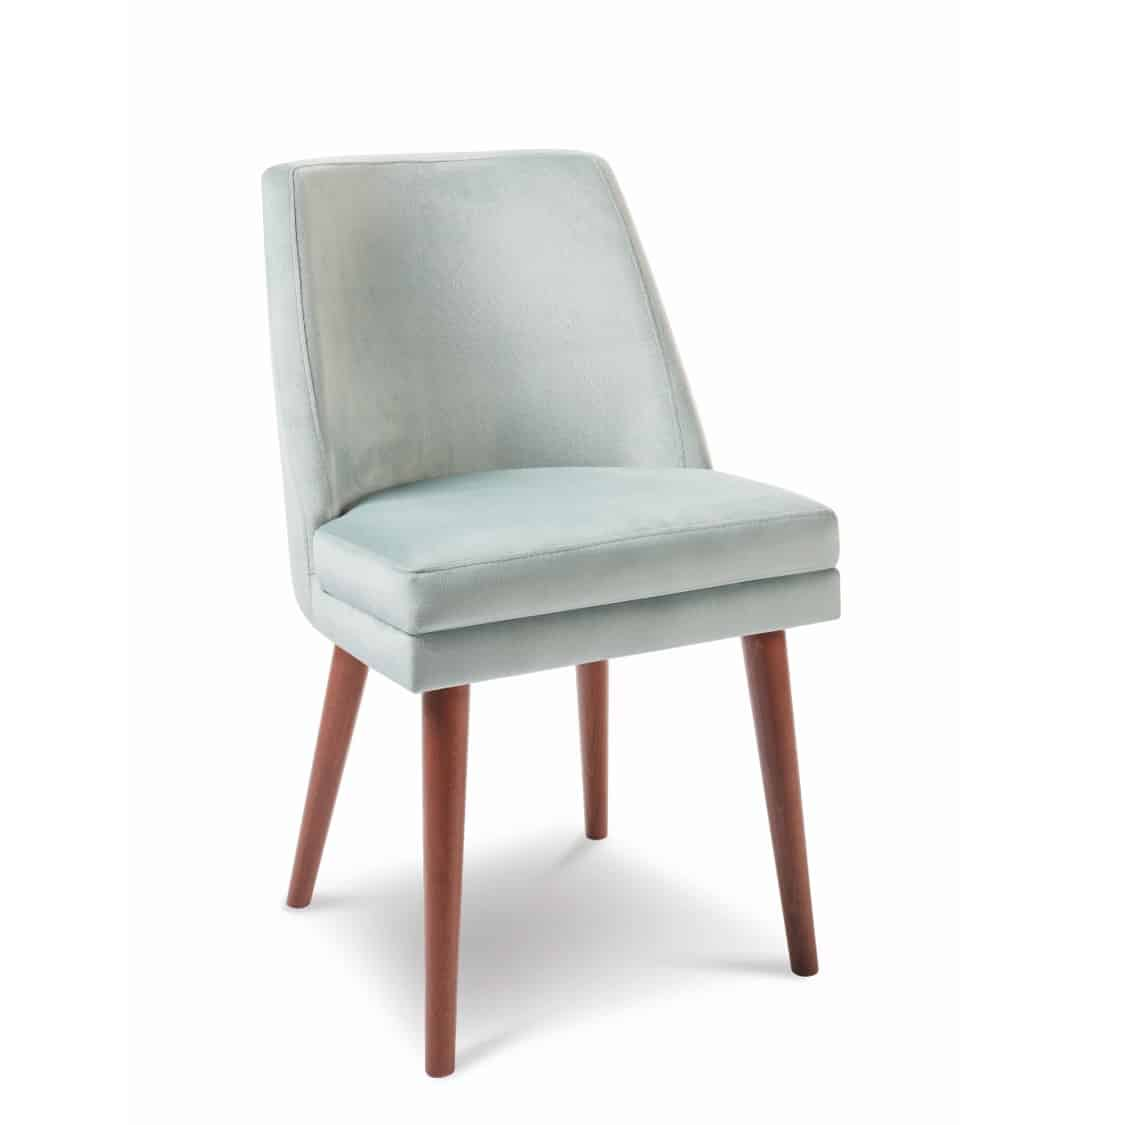 Sophia side chair with round legs at DeFrae Contract Furniture